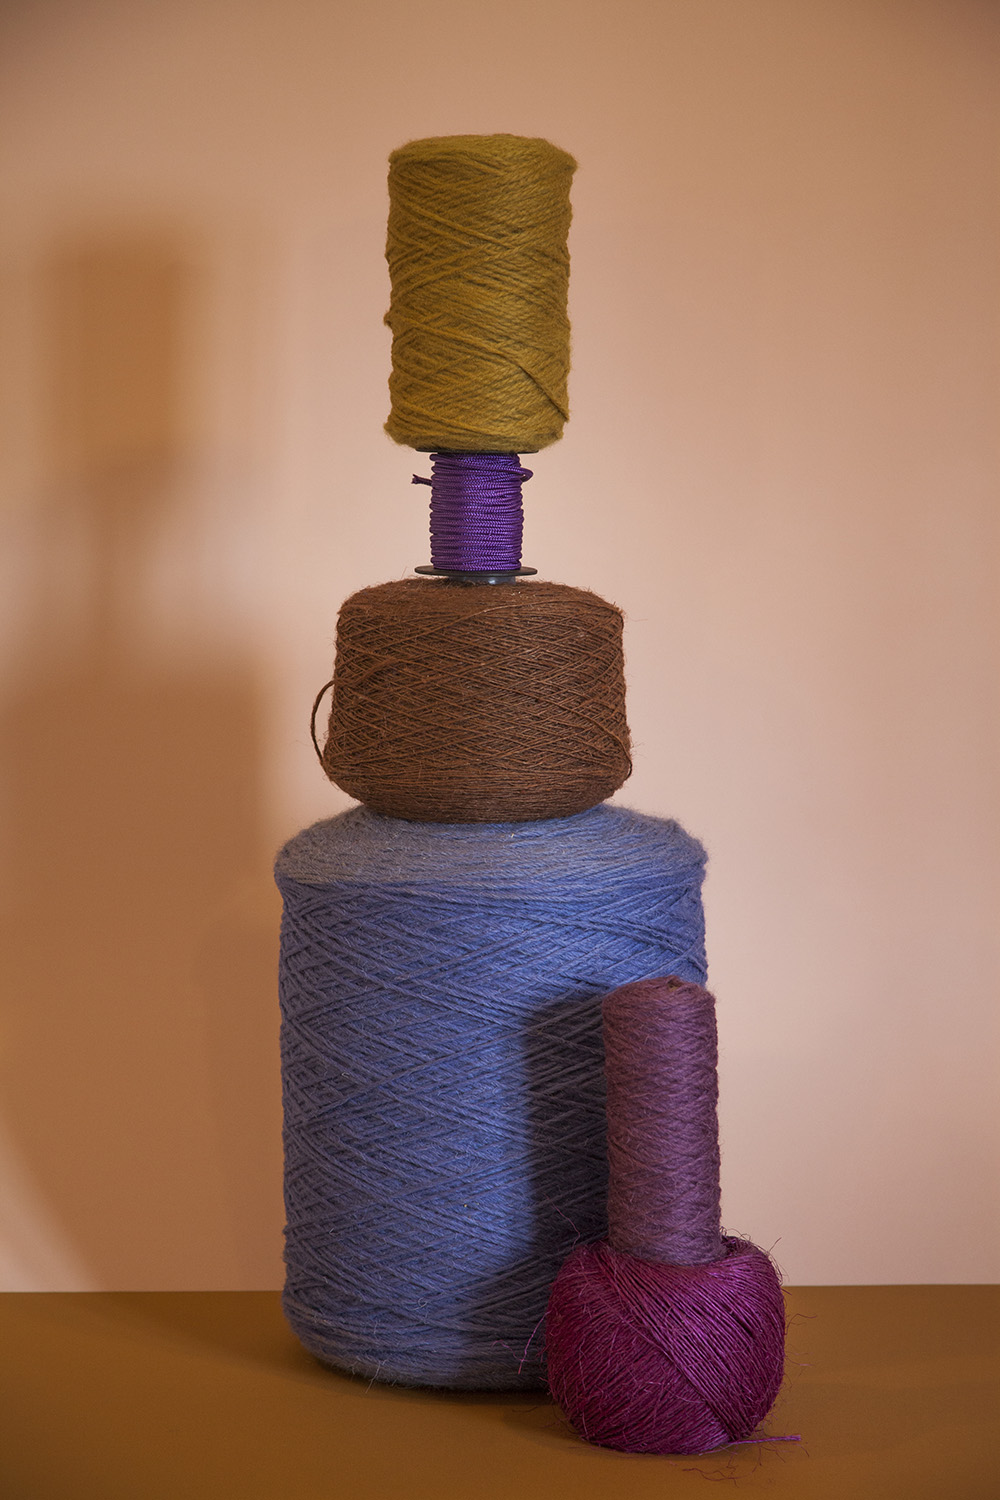 Compose - Is a continuous research in weaving. Playing with colours and materials to design textile for the interiors.